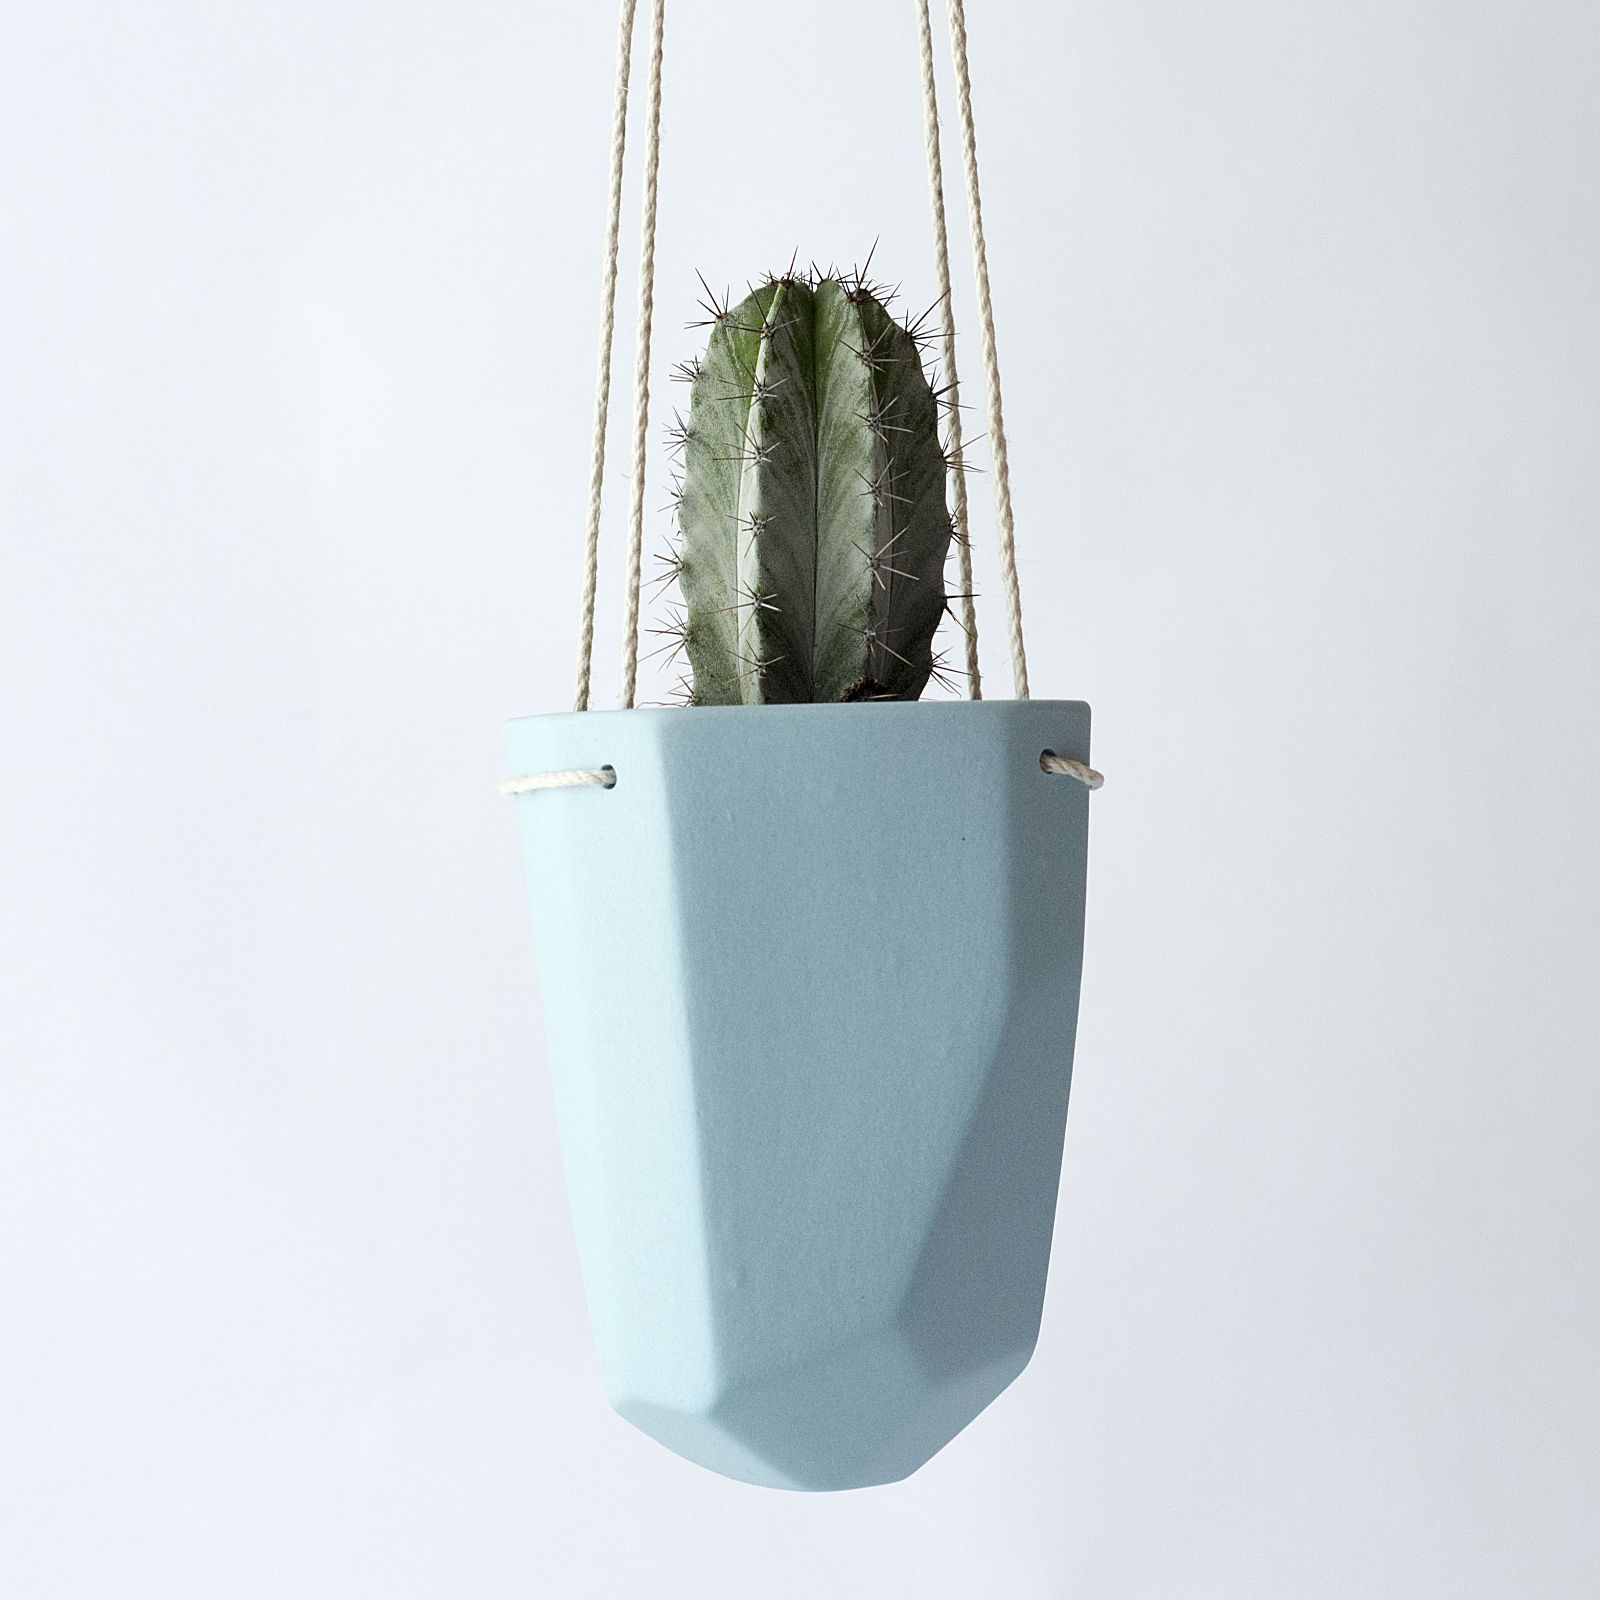 Bean and Bailey Hanging Ceramic planters are made for cute little cacti. online at Billy, Puss and Me.